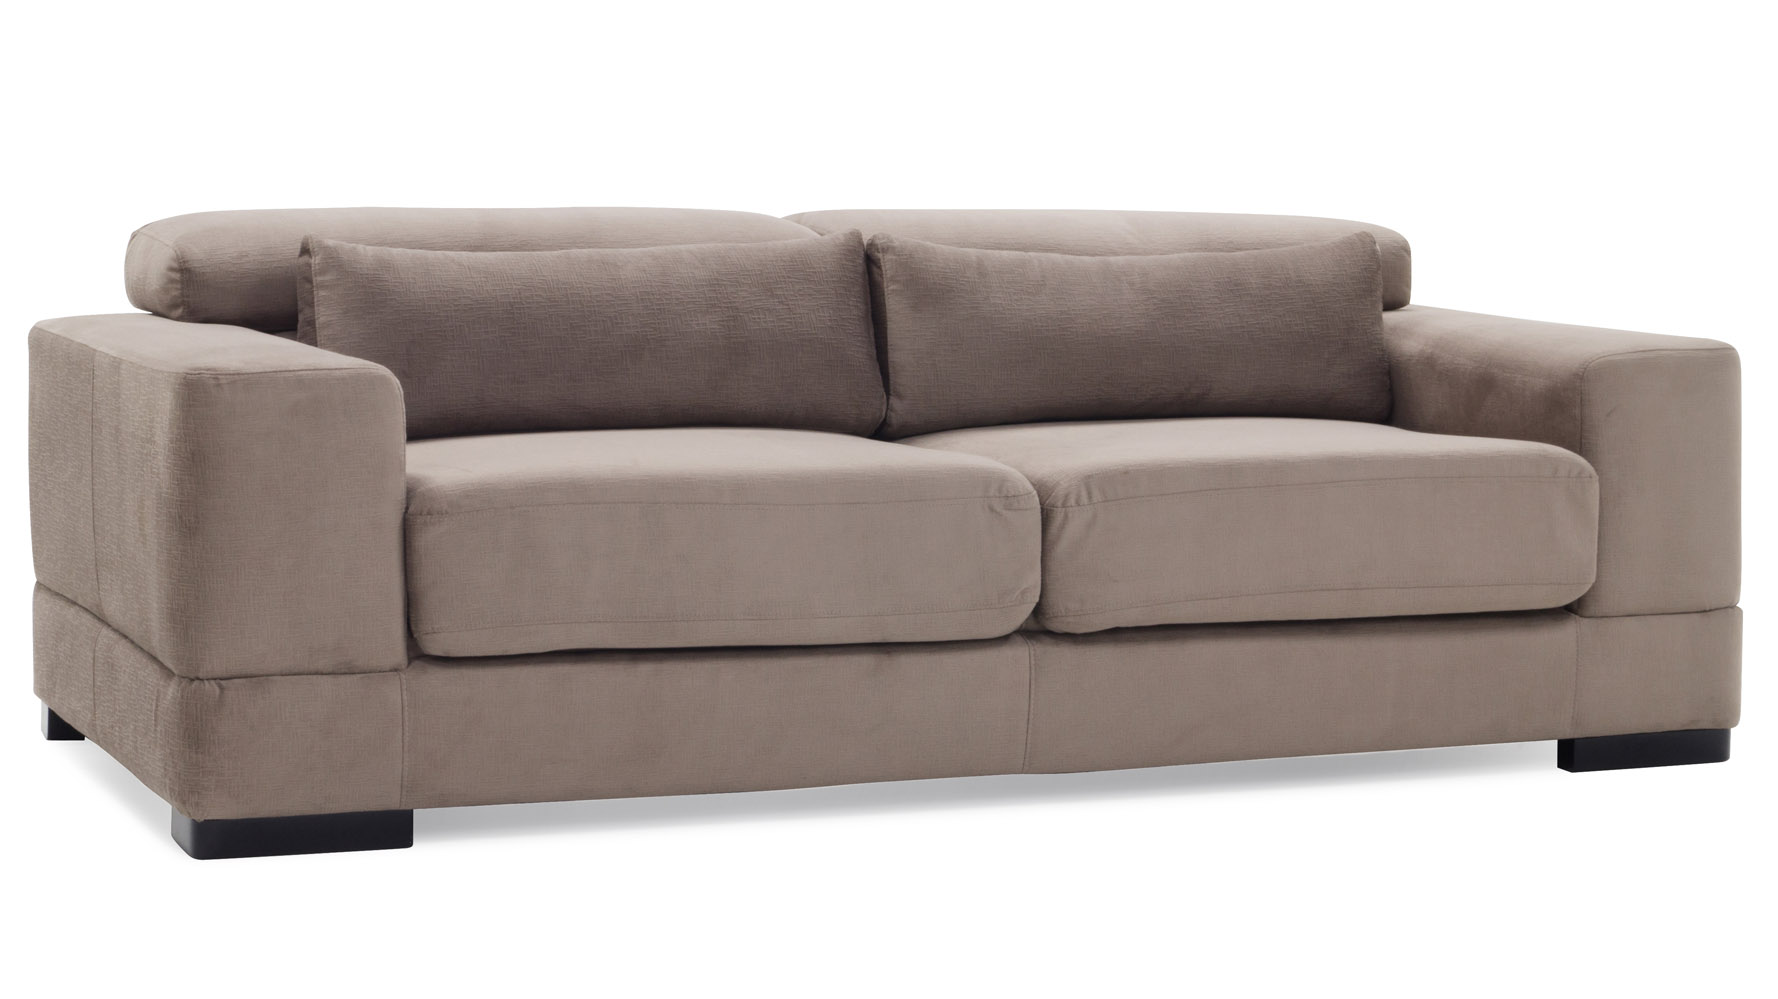 60 inch wide sleeper sofa donate a chester pull out fabric zuri furniture